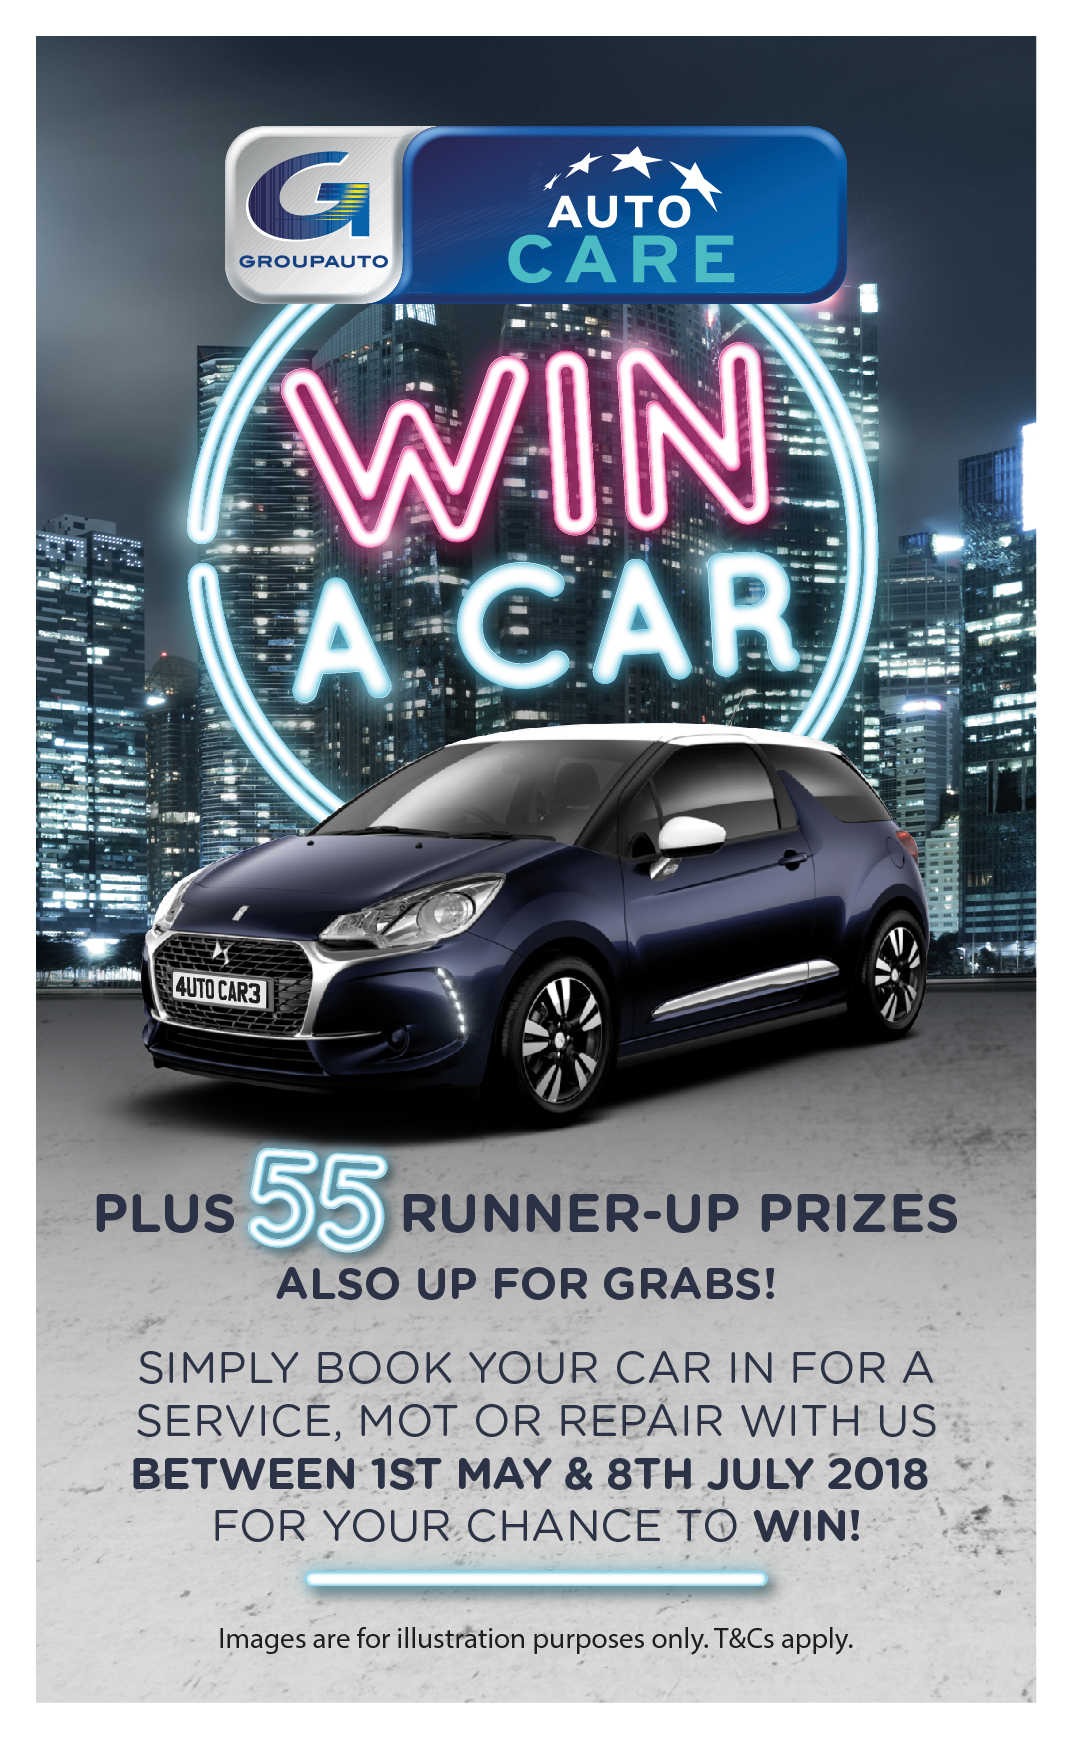 How To Win A Car >> Win A Car Competition Only 4 Weeks To Go Garej Arwyn S